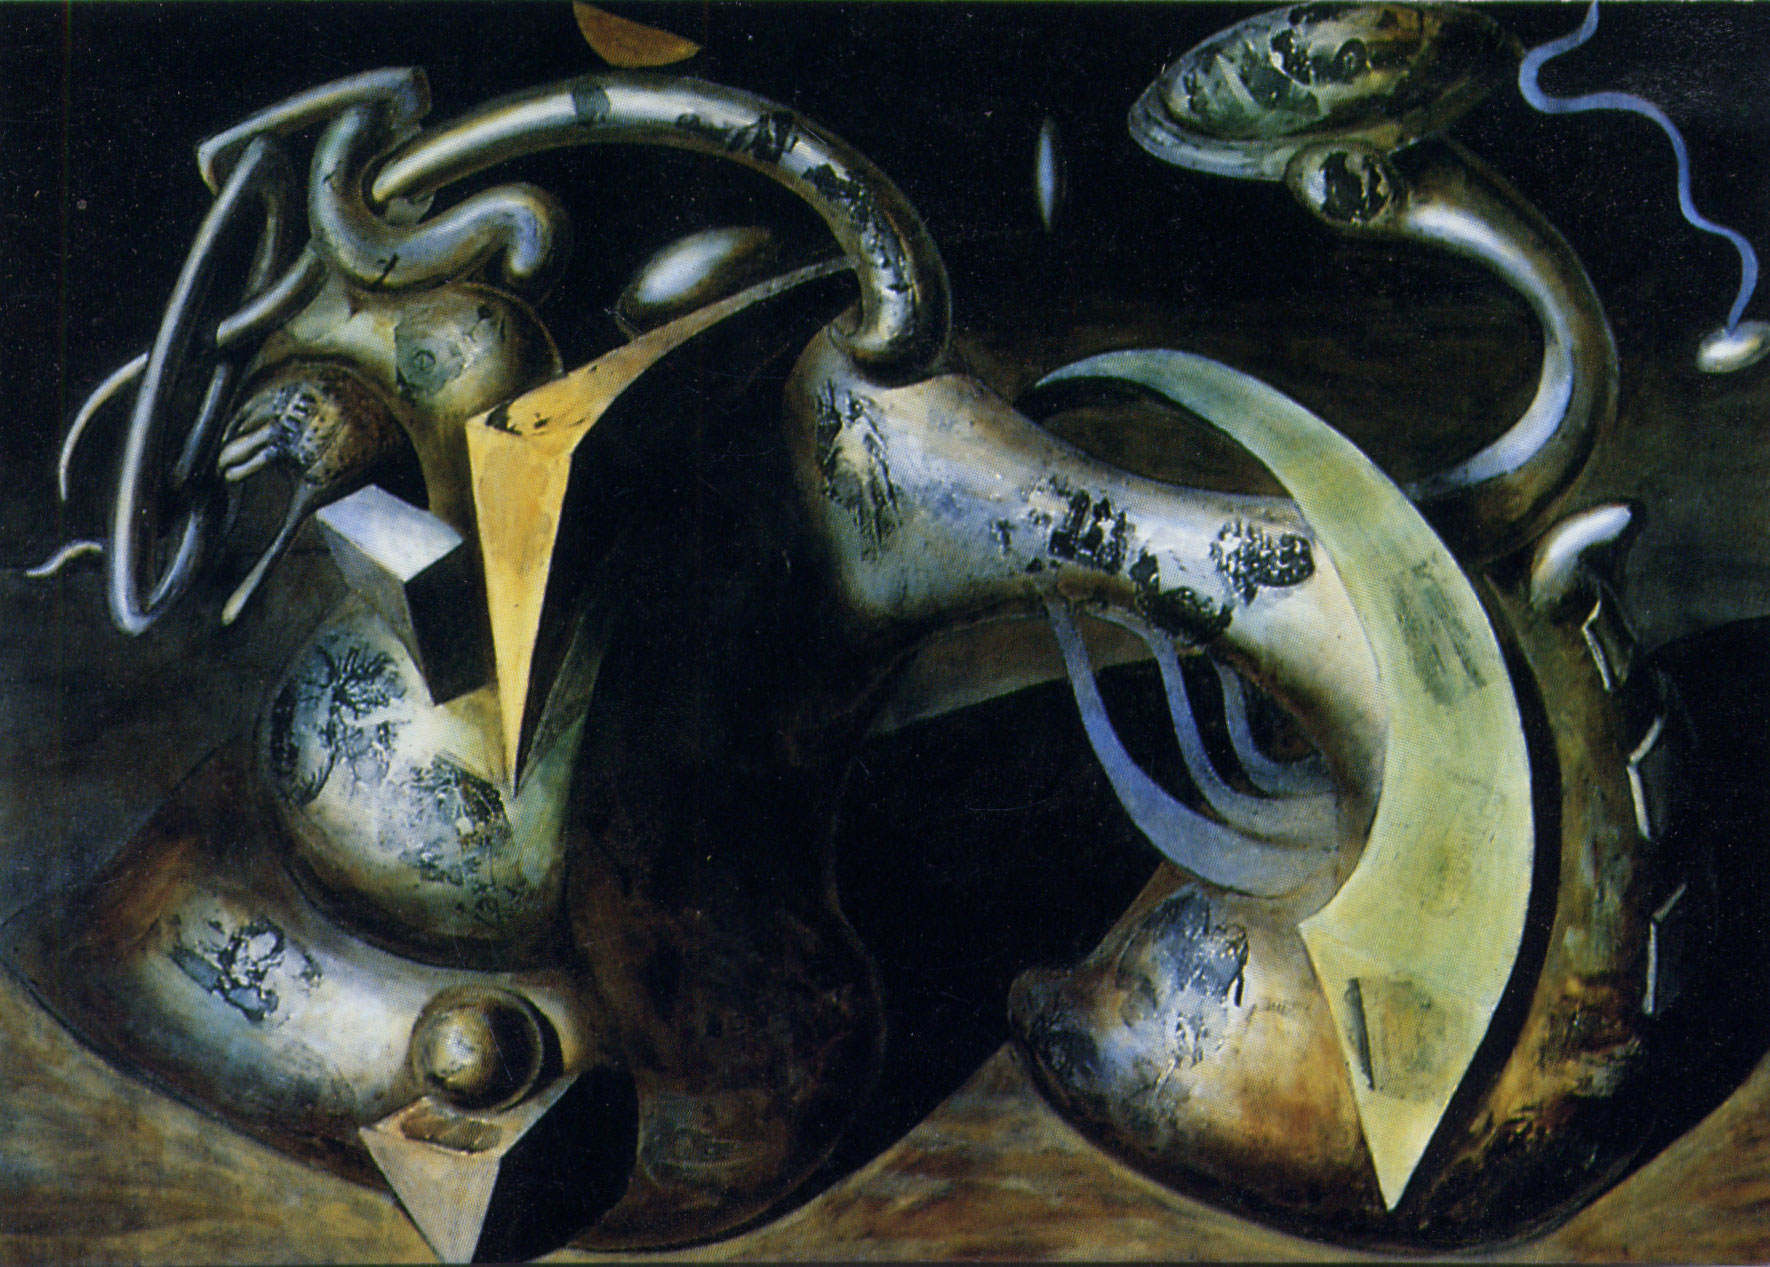 Oil on canvas, 1991.